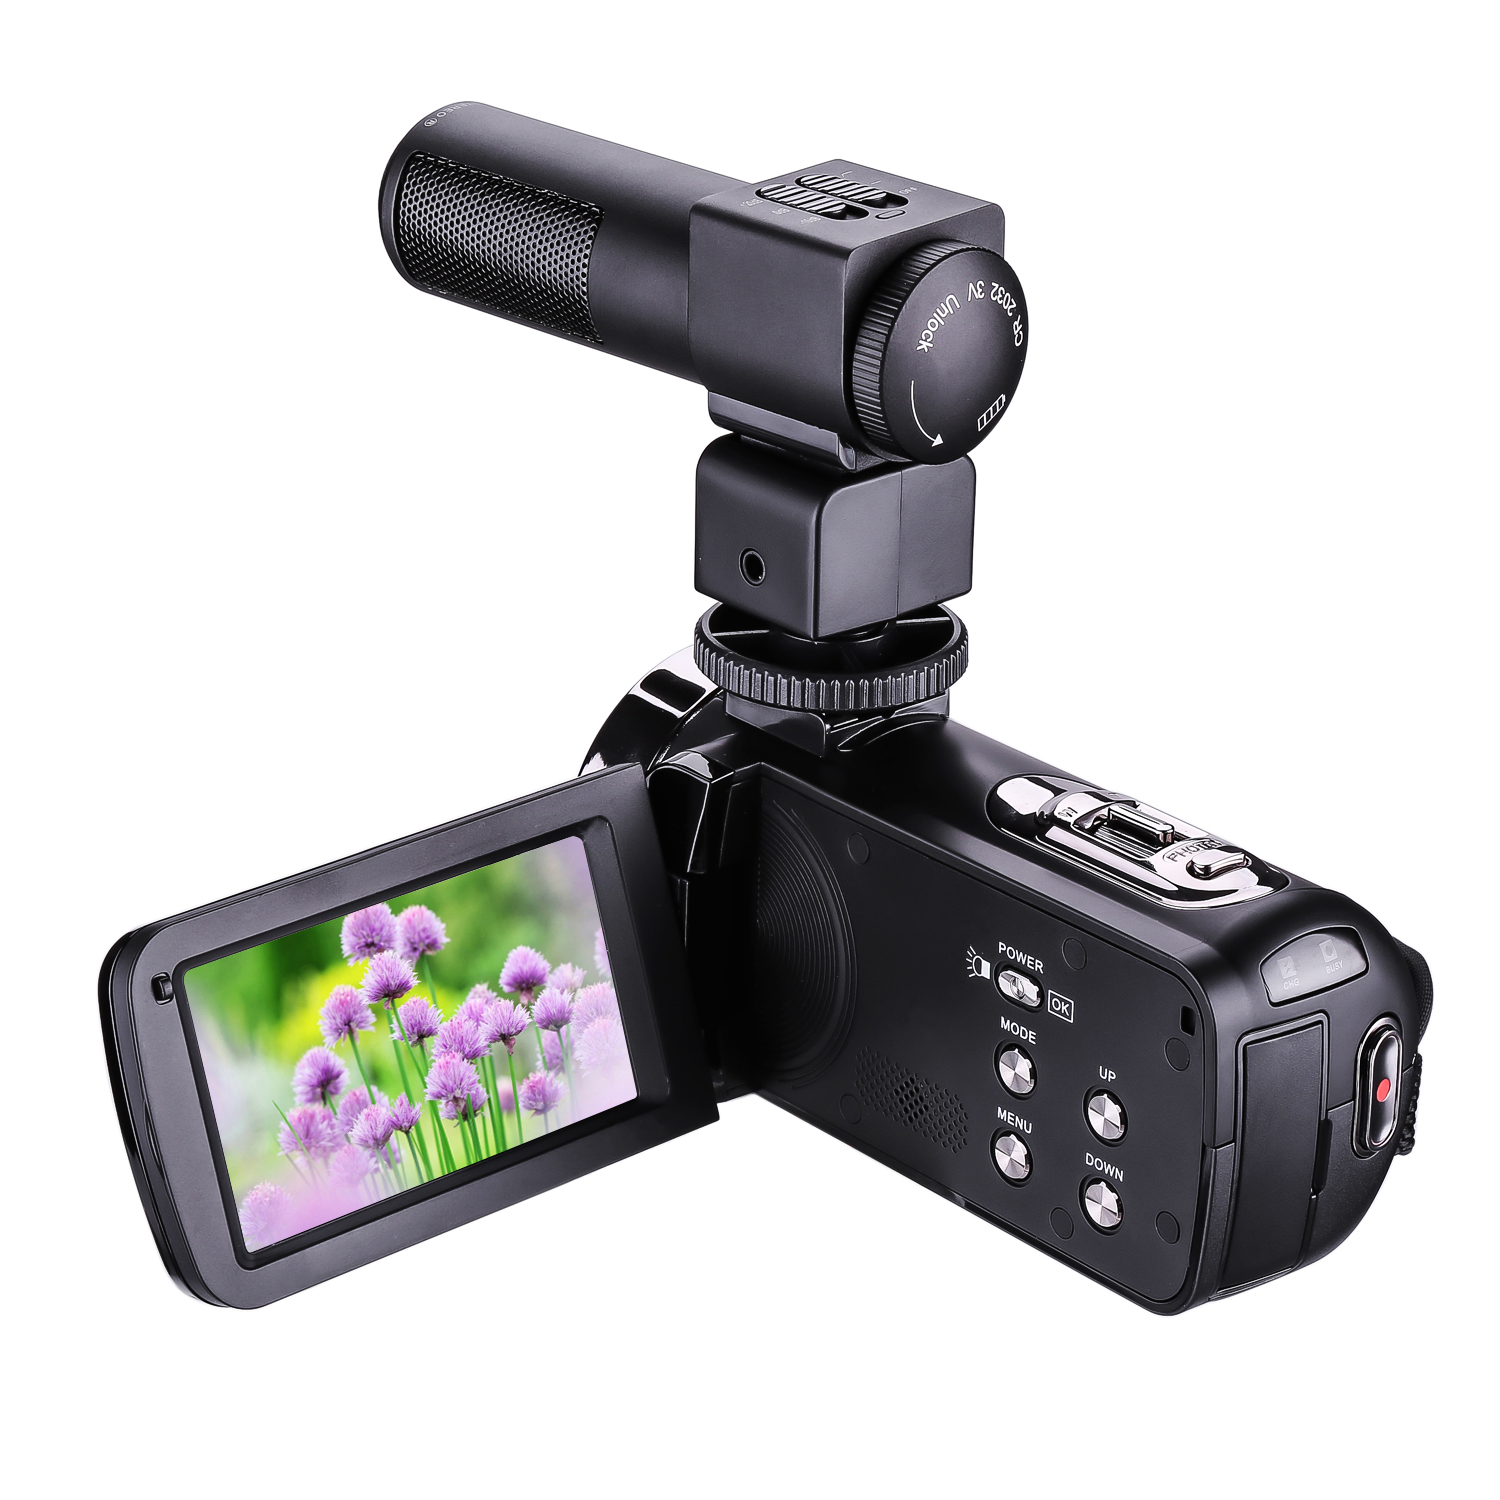 new arrival video camera hd 1080p IR mini DV supporting external microphone 301STRM